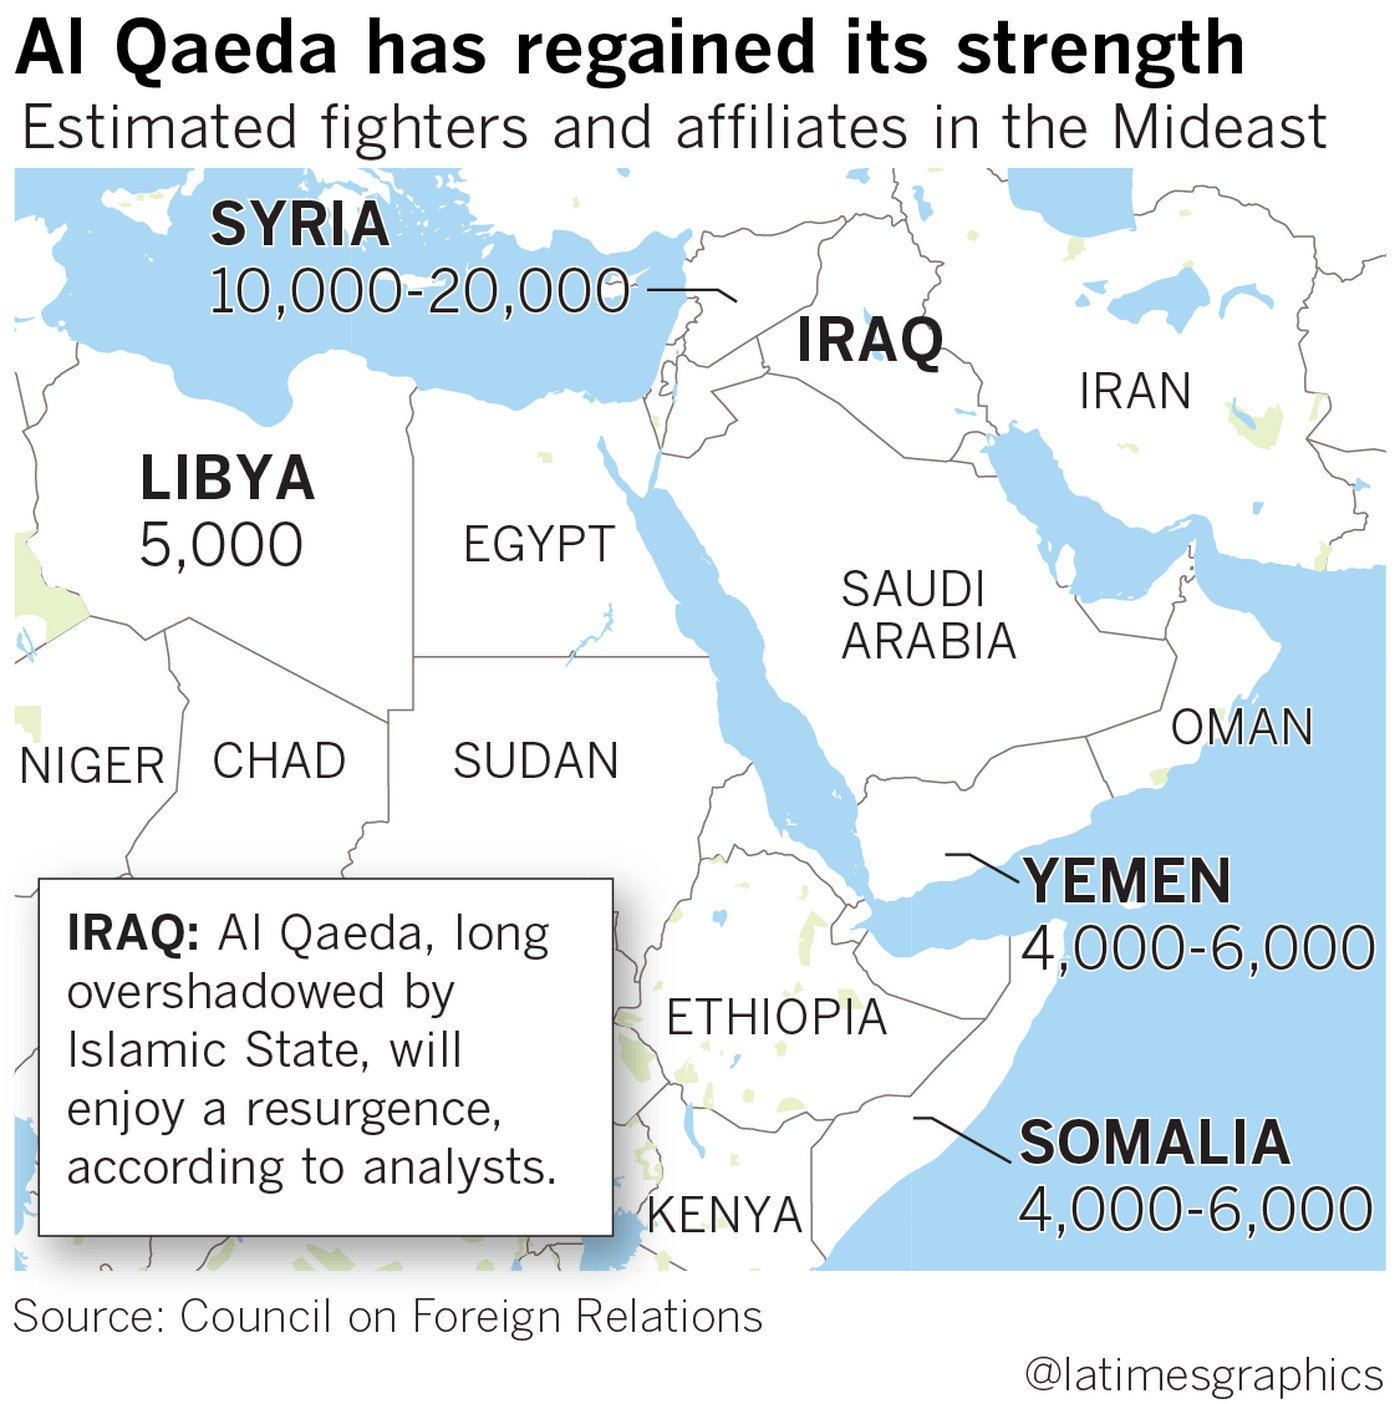 17 years after 9/11, Al Qaeda has amassed the largest fighting force in its existence https://t.co/KXdBKwA8hH https://t.co/5rjVjzWiAa